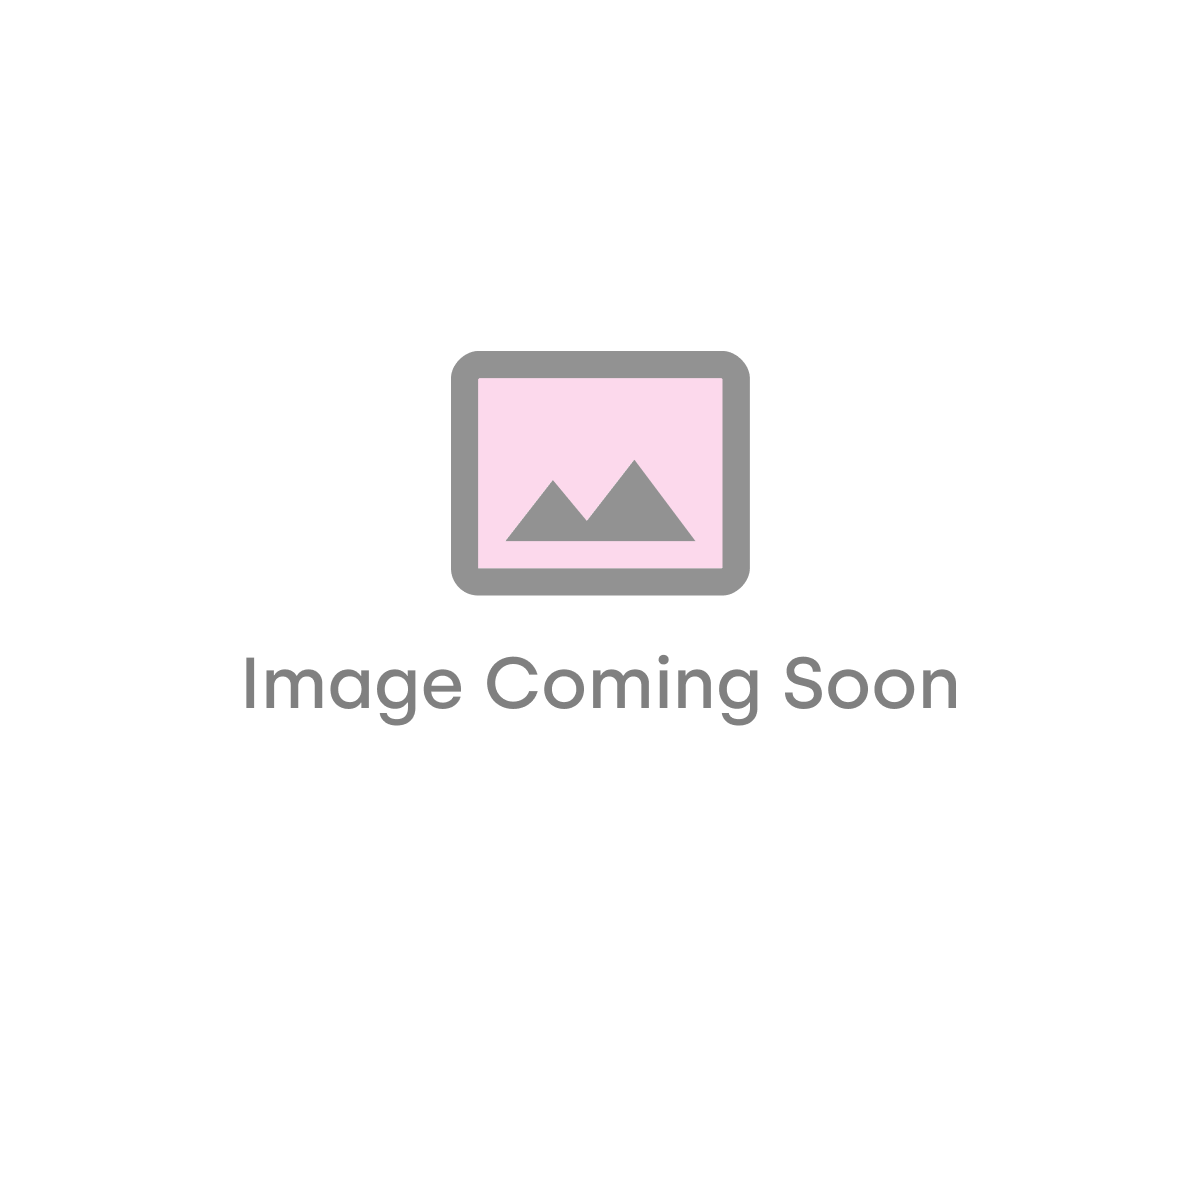 Lusso Panel Essentials White Embedded 2.7m Ceiling Panel - 5 Pack (19556)